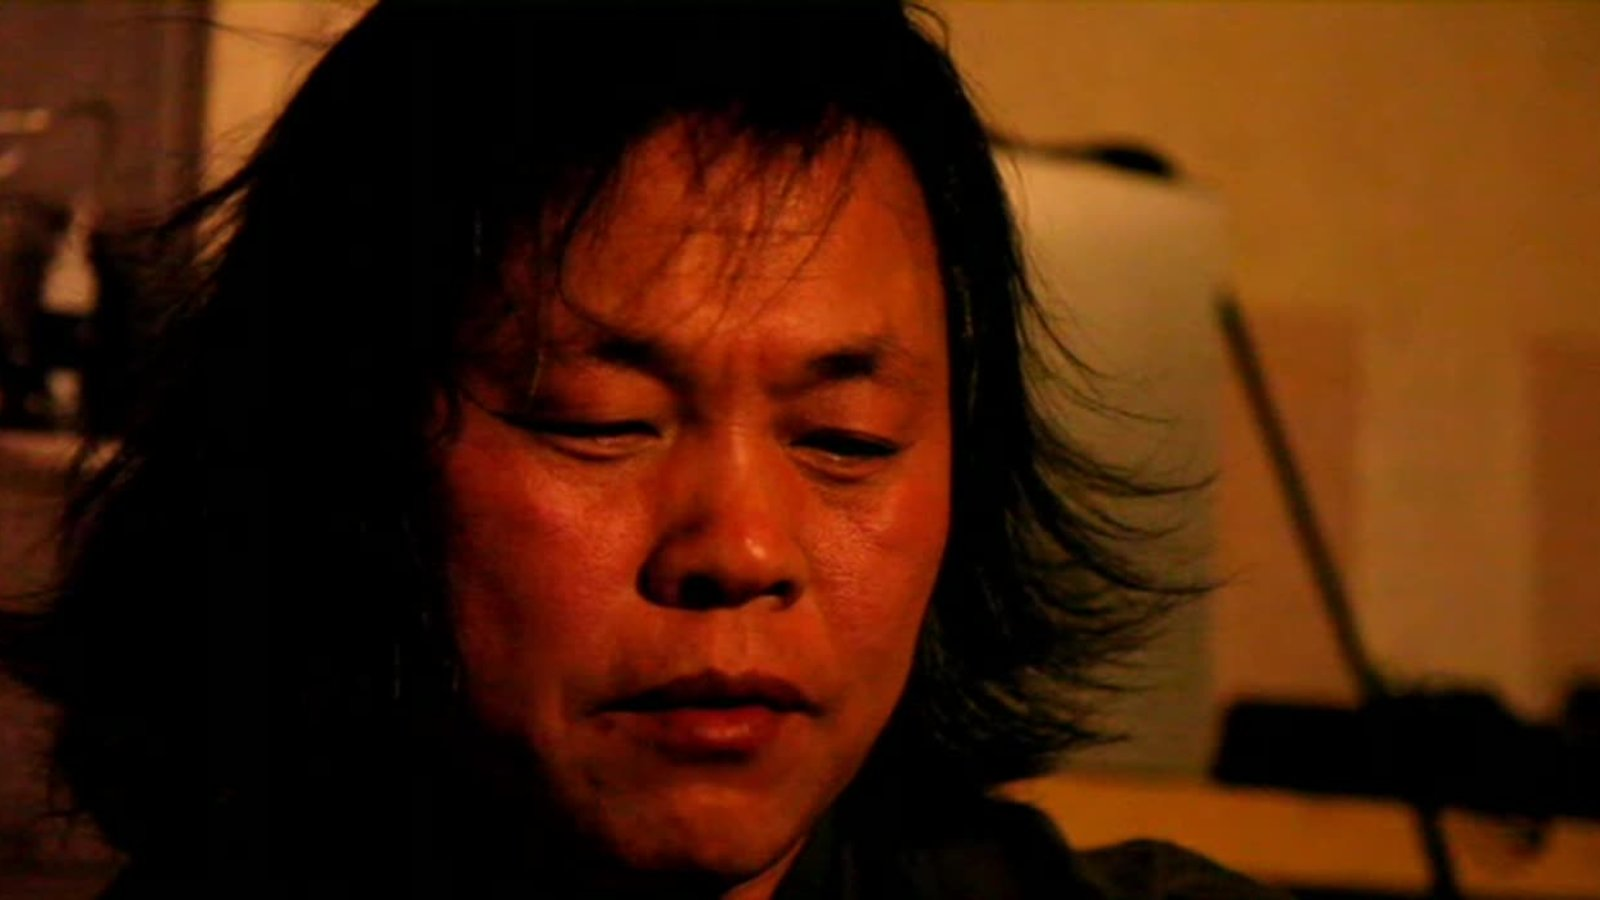 Arirang - Korean director Kim Ki-Duk